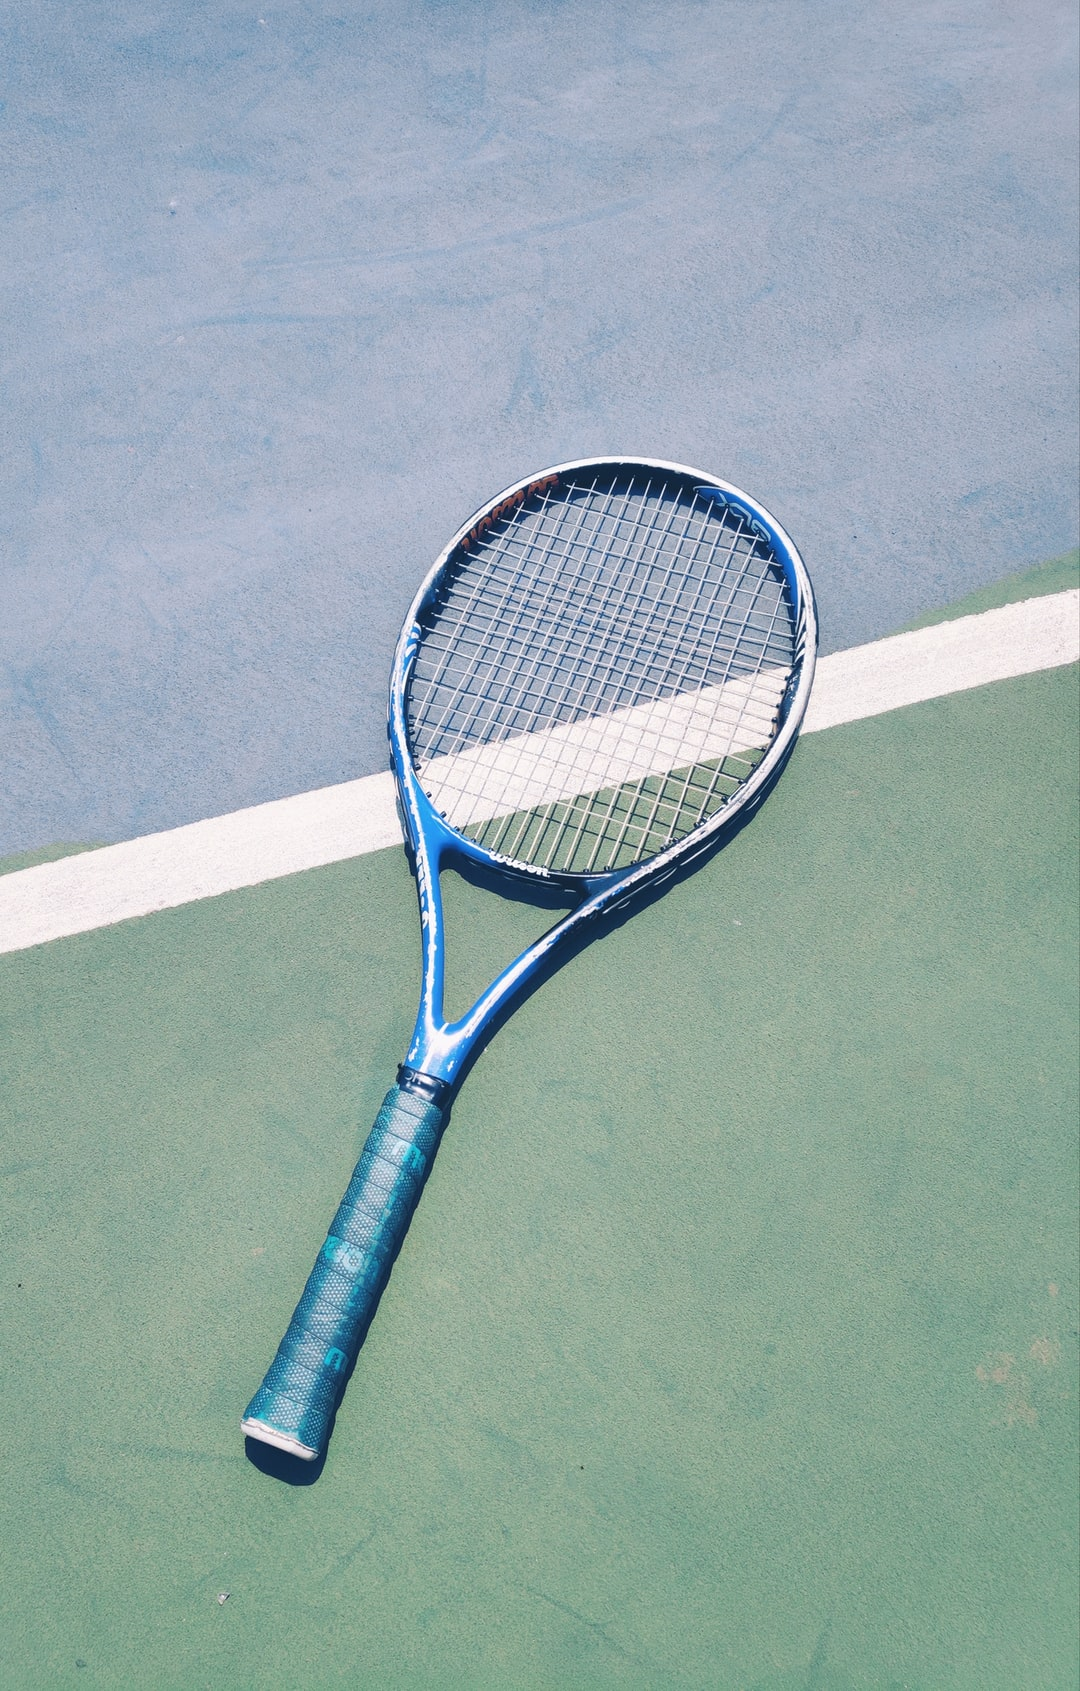 Some Racket things to look forward to